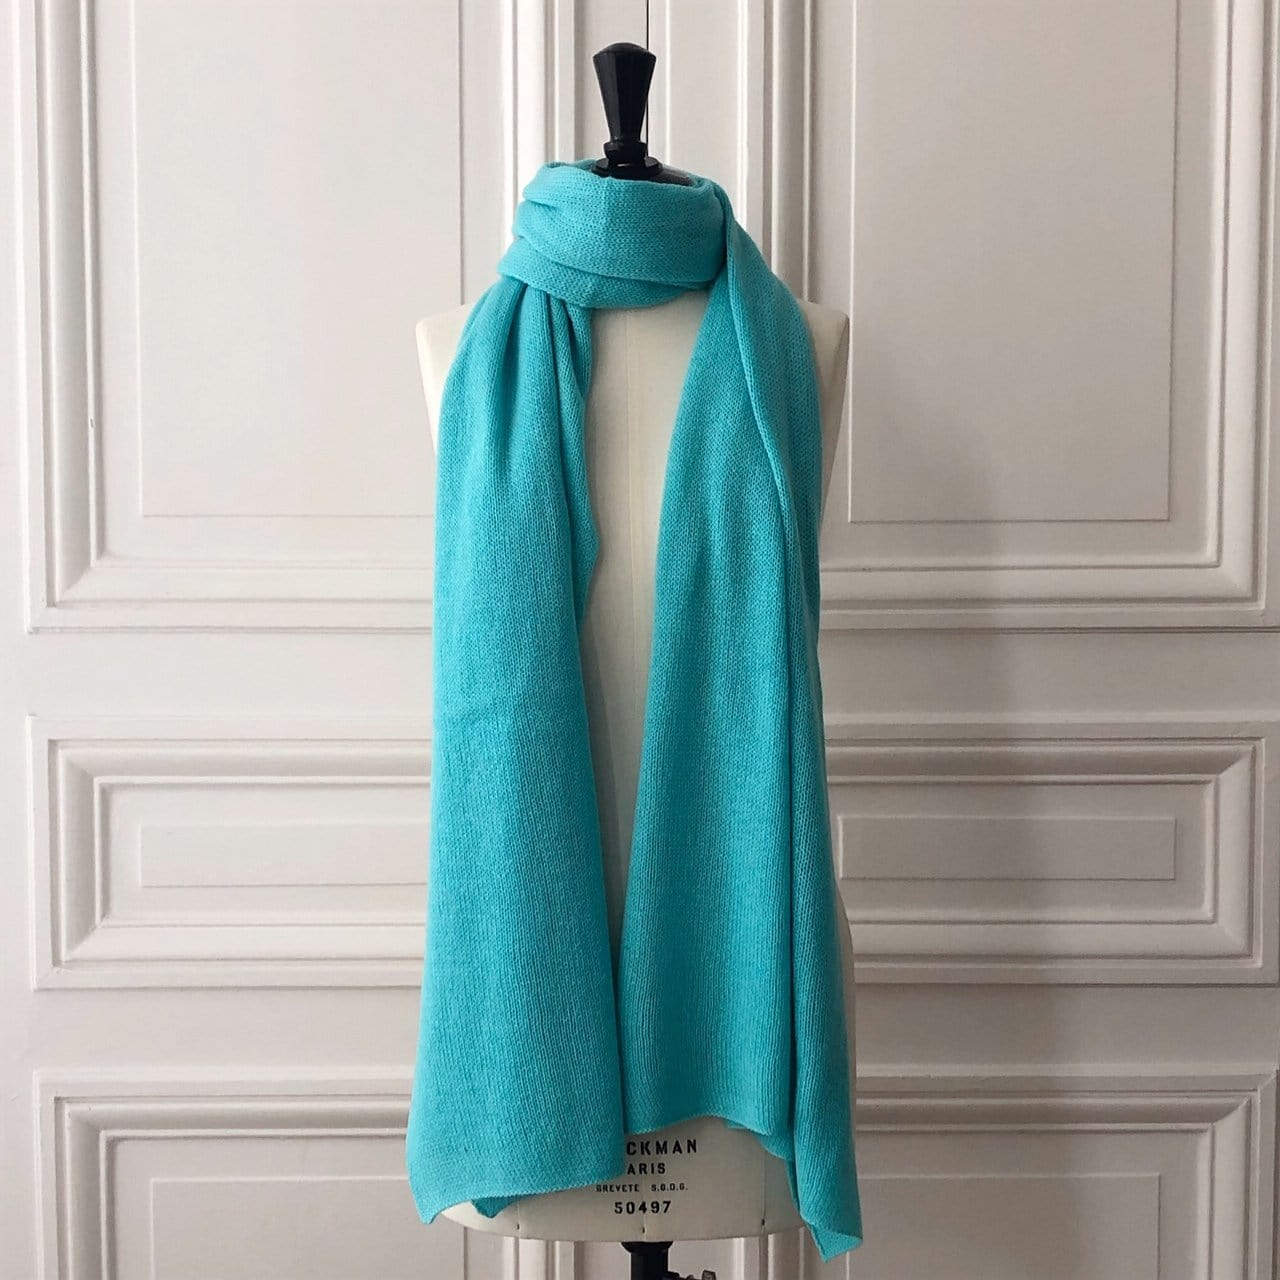 Echarpe Evesome maille mousseuse 200x60 cm 100% cachemire - Evesome scarf foamy mesh 200x60 cm 100% cashmere